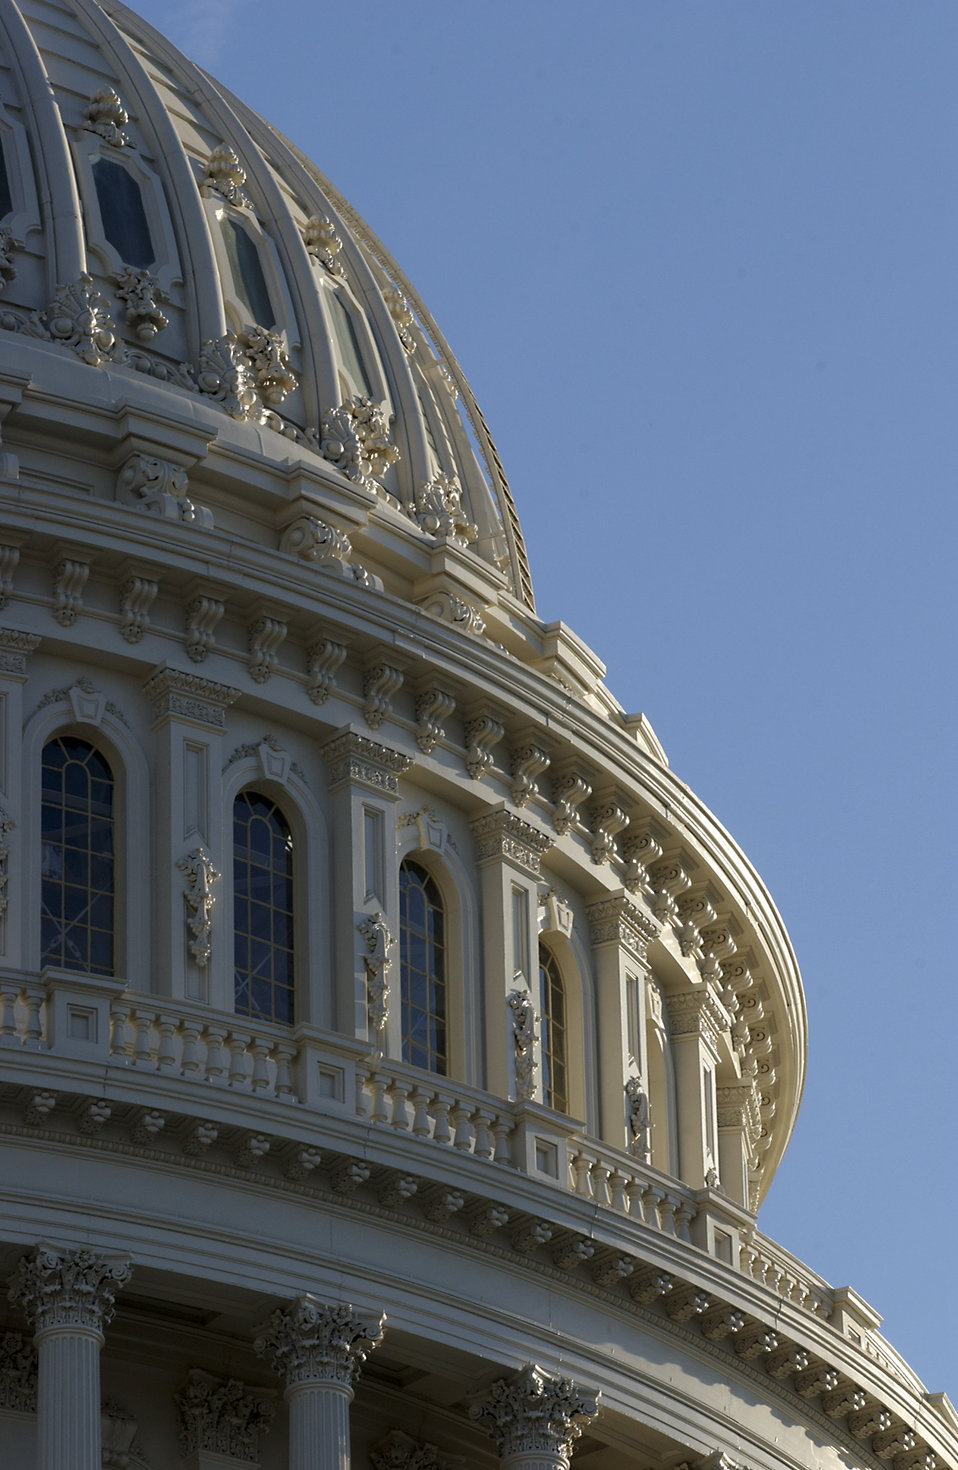 Close up view of the U.S. Capitol